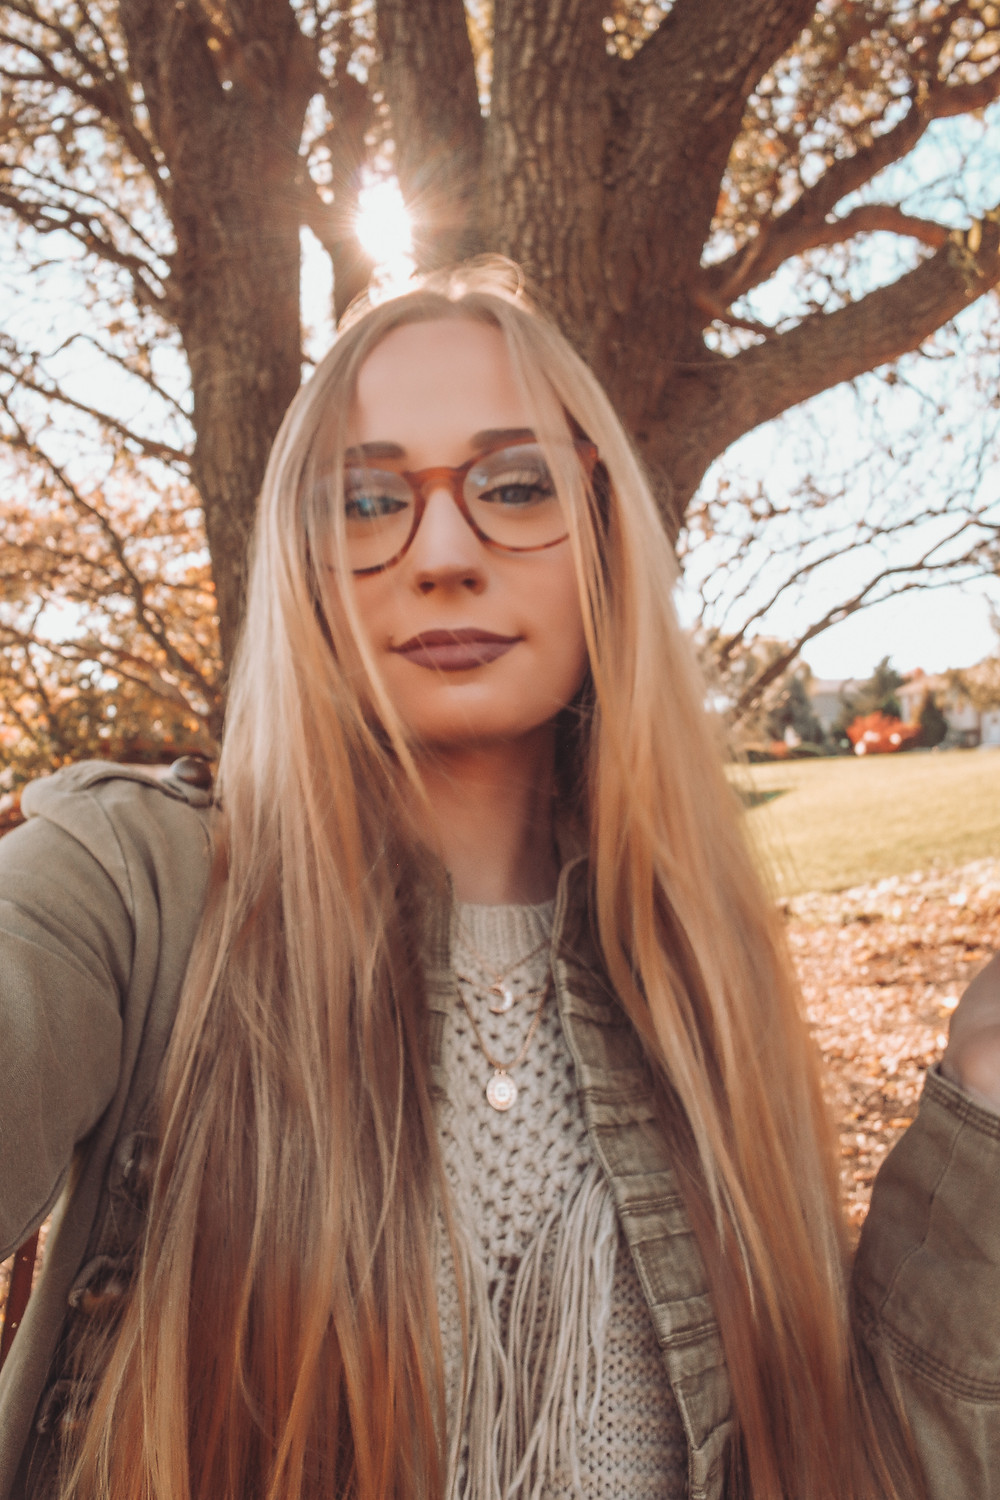 Glasses, Girl wearing glasses, studious look, studious style, blonde, long blonde hair, barefoot blonde, fall, fall backdrop, fall photos, fall photoshoot idea, military jacket, how to wear military jacket, military jacket outfits, thrifted, thrifted outfit, thrift blogger, the Salvation Army, Salvation Army finds, glasses, Warby Parker glasses, tortoise glasses, blue lenses, blue light filtering, blue light filtering lenses, do blue light lenses work, blue light filtering lenses review, light filtering, blue, glasses, Vivid Eyeware, The Heil Style, April M. Heil, April Heil, fashion, thrifting, lifestyle, blogger, fashion blogger, top fashion bloggers